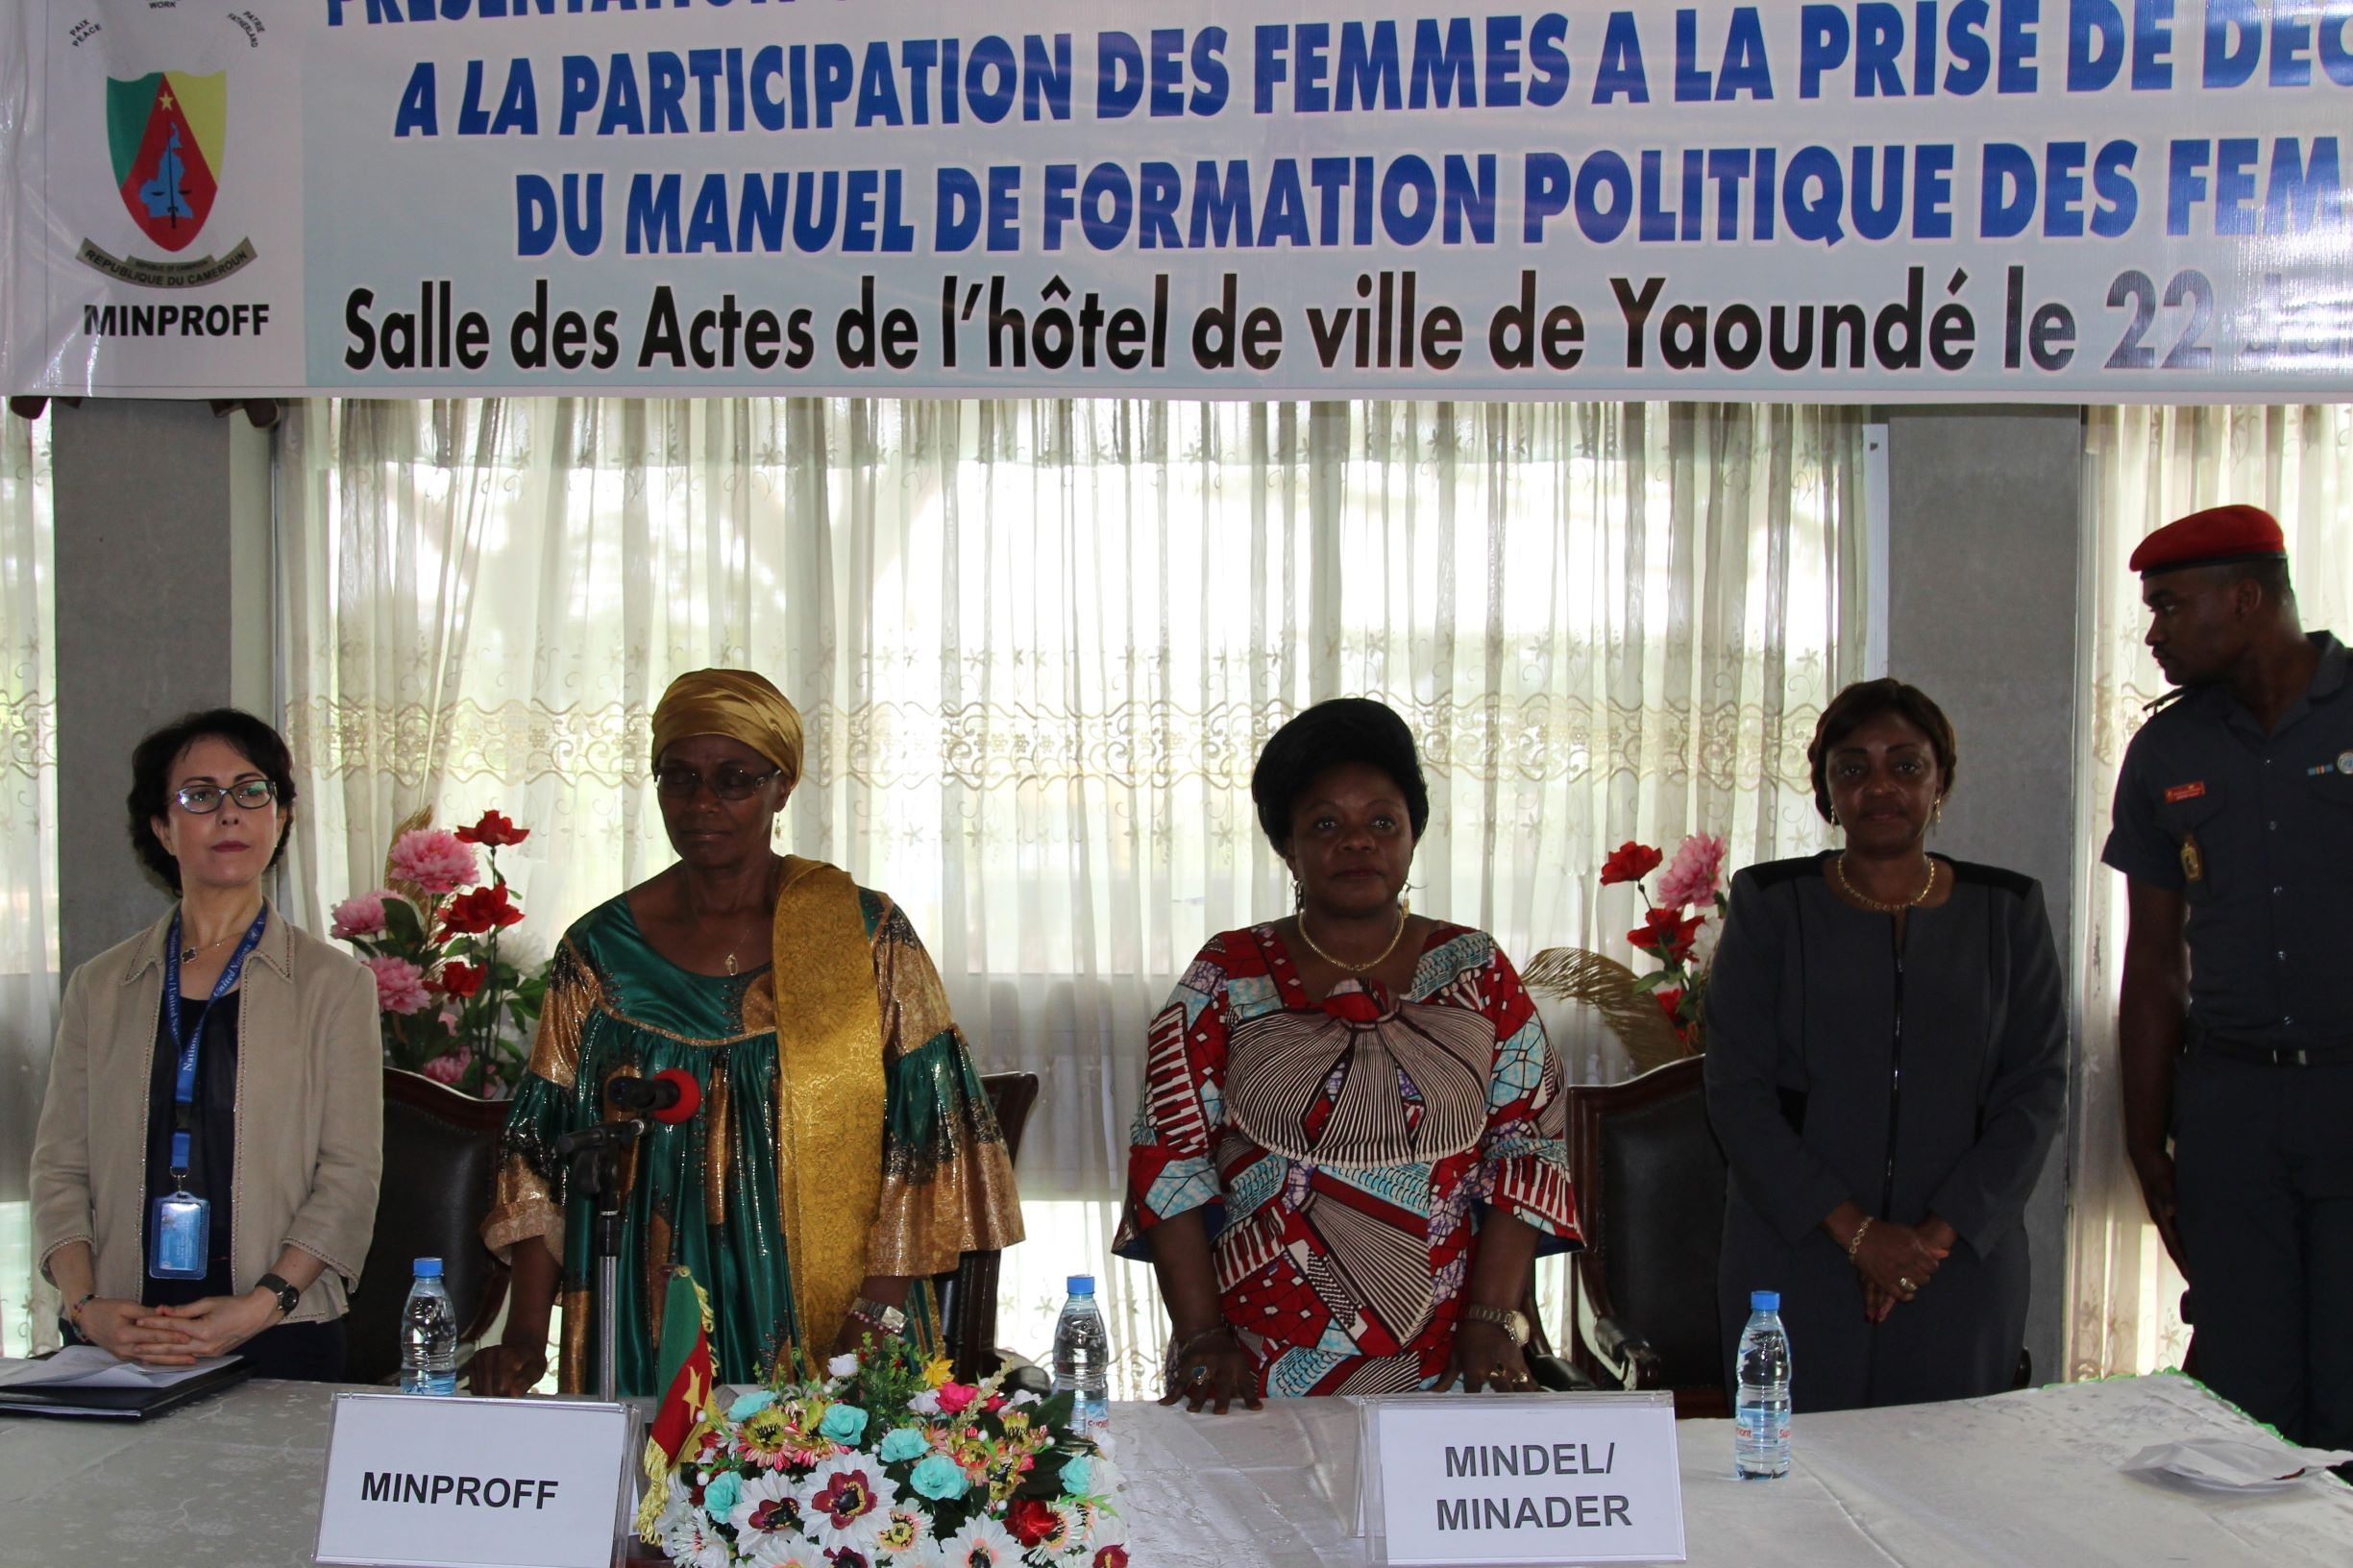 UN Women and MINPROFF unveiled the manual and national action plan to support effective women participation in politics and decision making in Cameroon